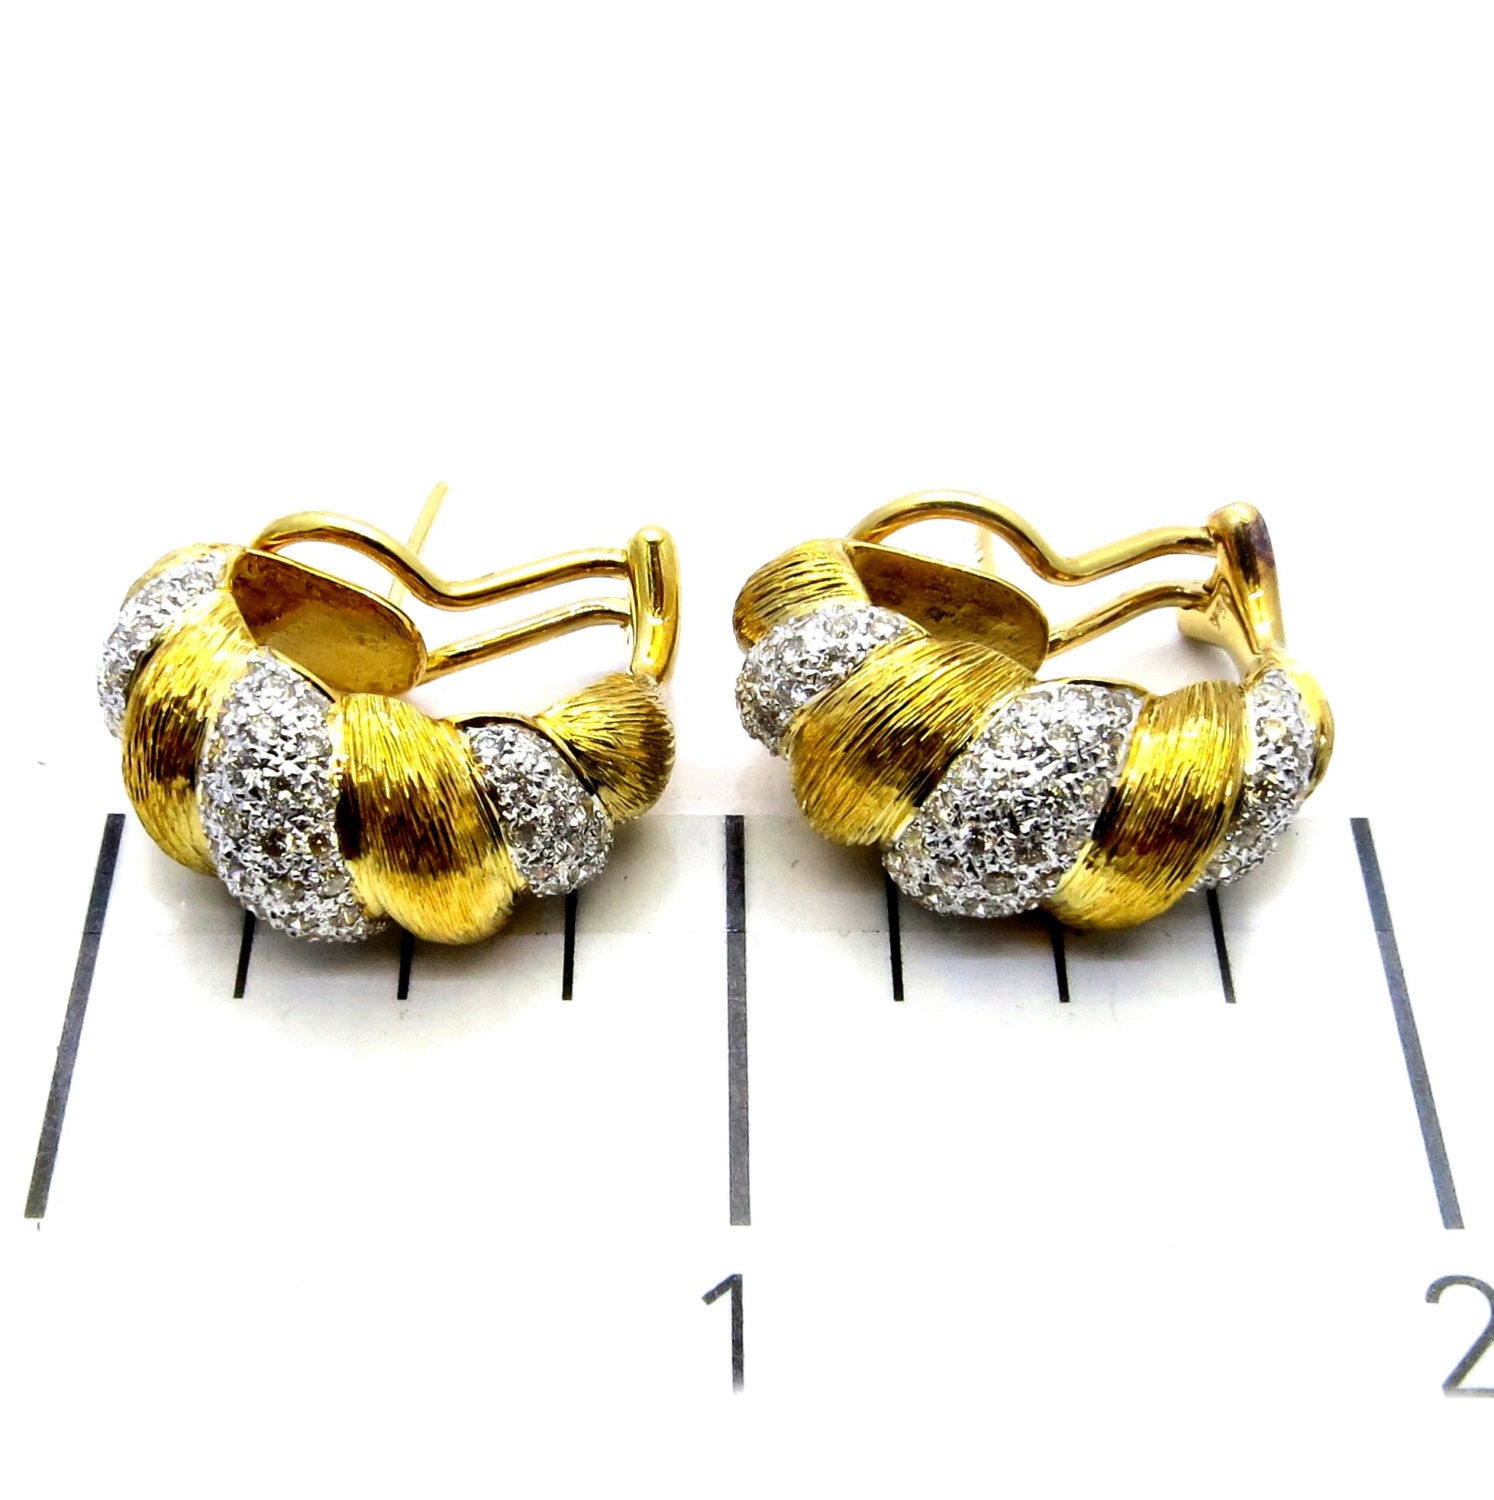 Unique Hand-Scraped Gold & Diamond Huggie Earrings